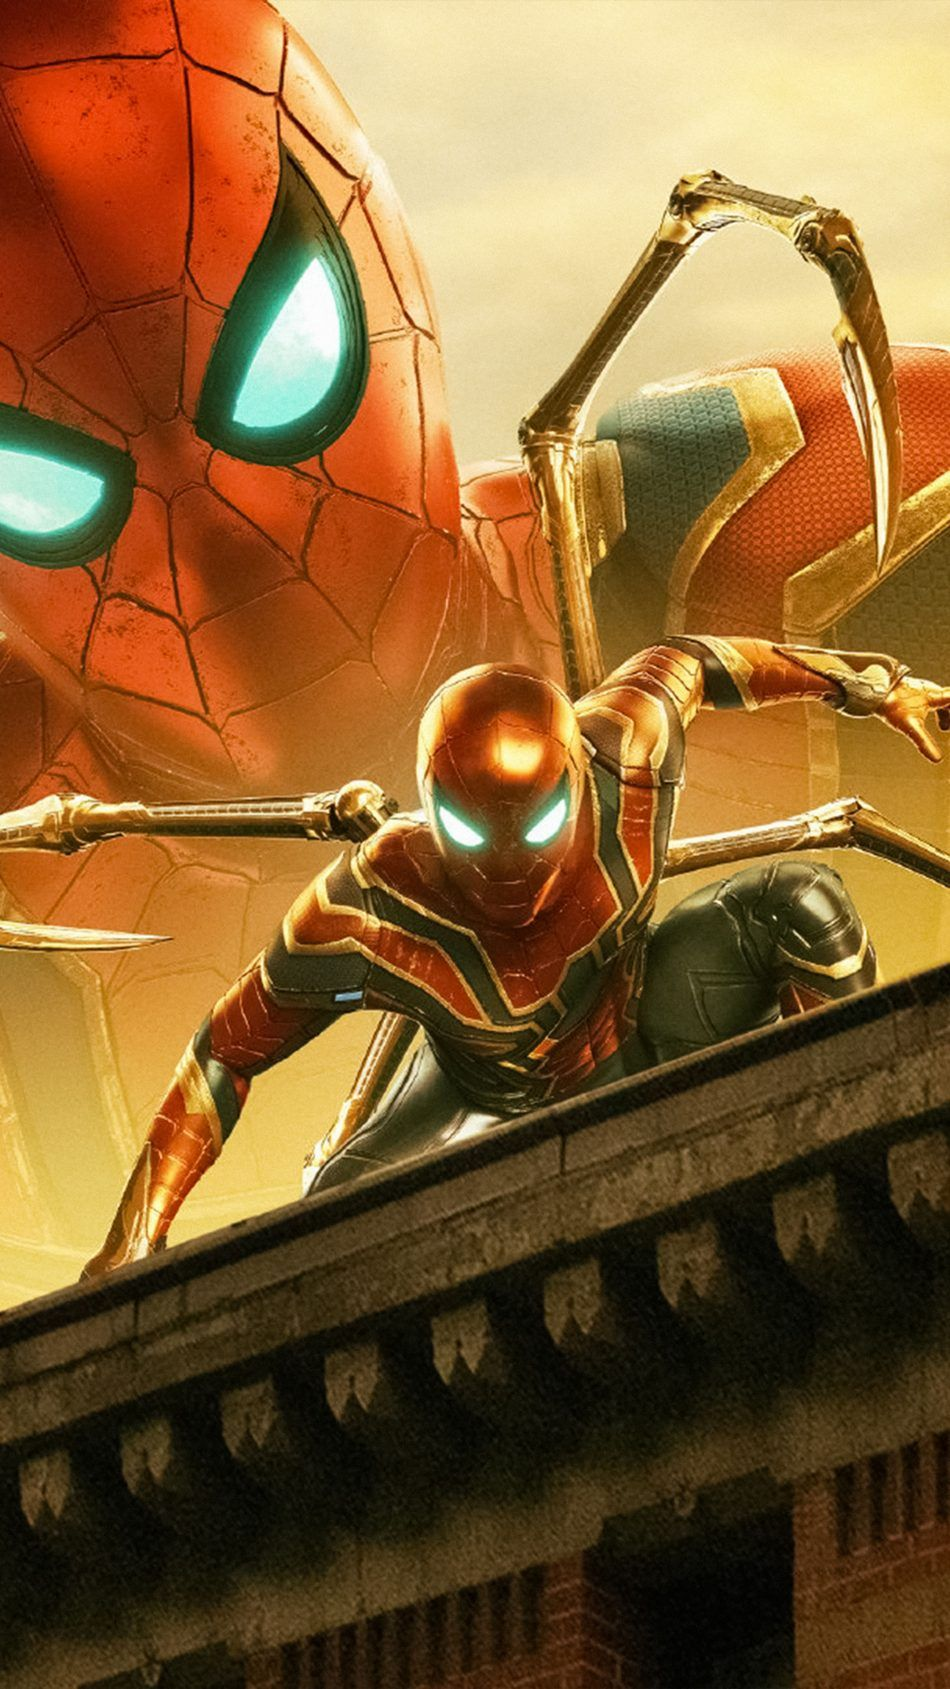 Iron Spider Spider Man Far From Home 2019 Cool Stuff